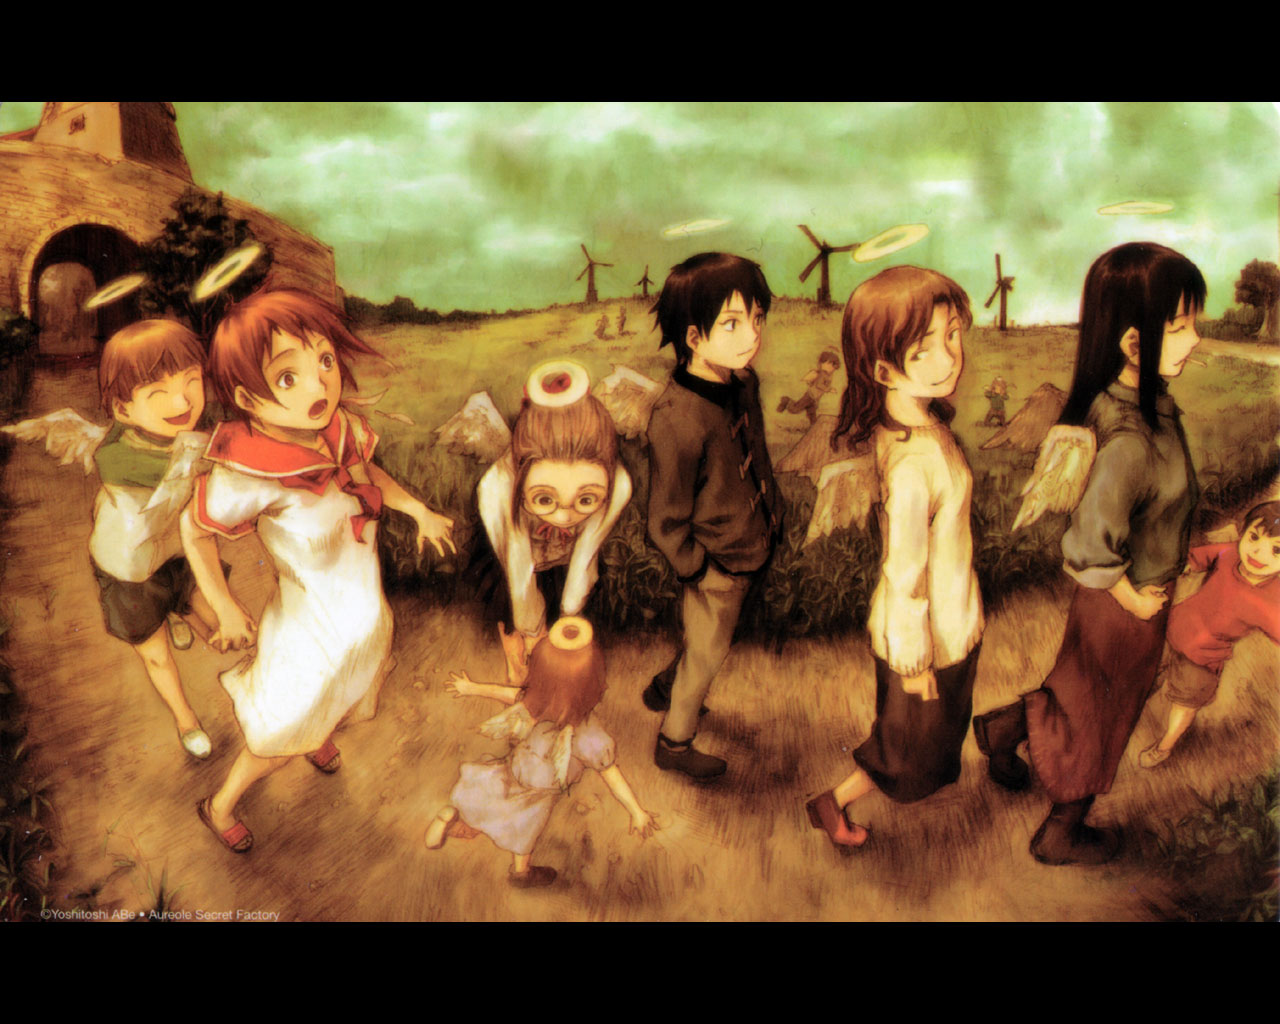 Haibane Renmei Pics, Anime Collection